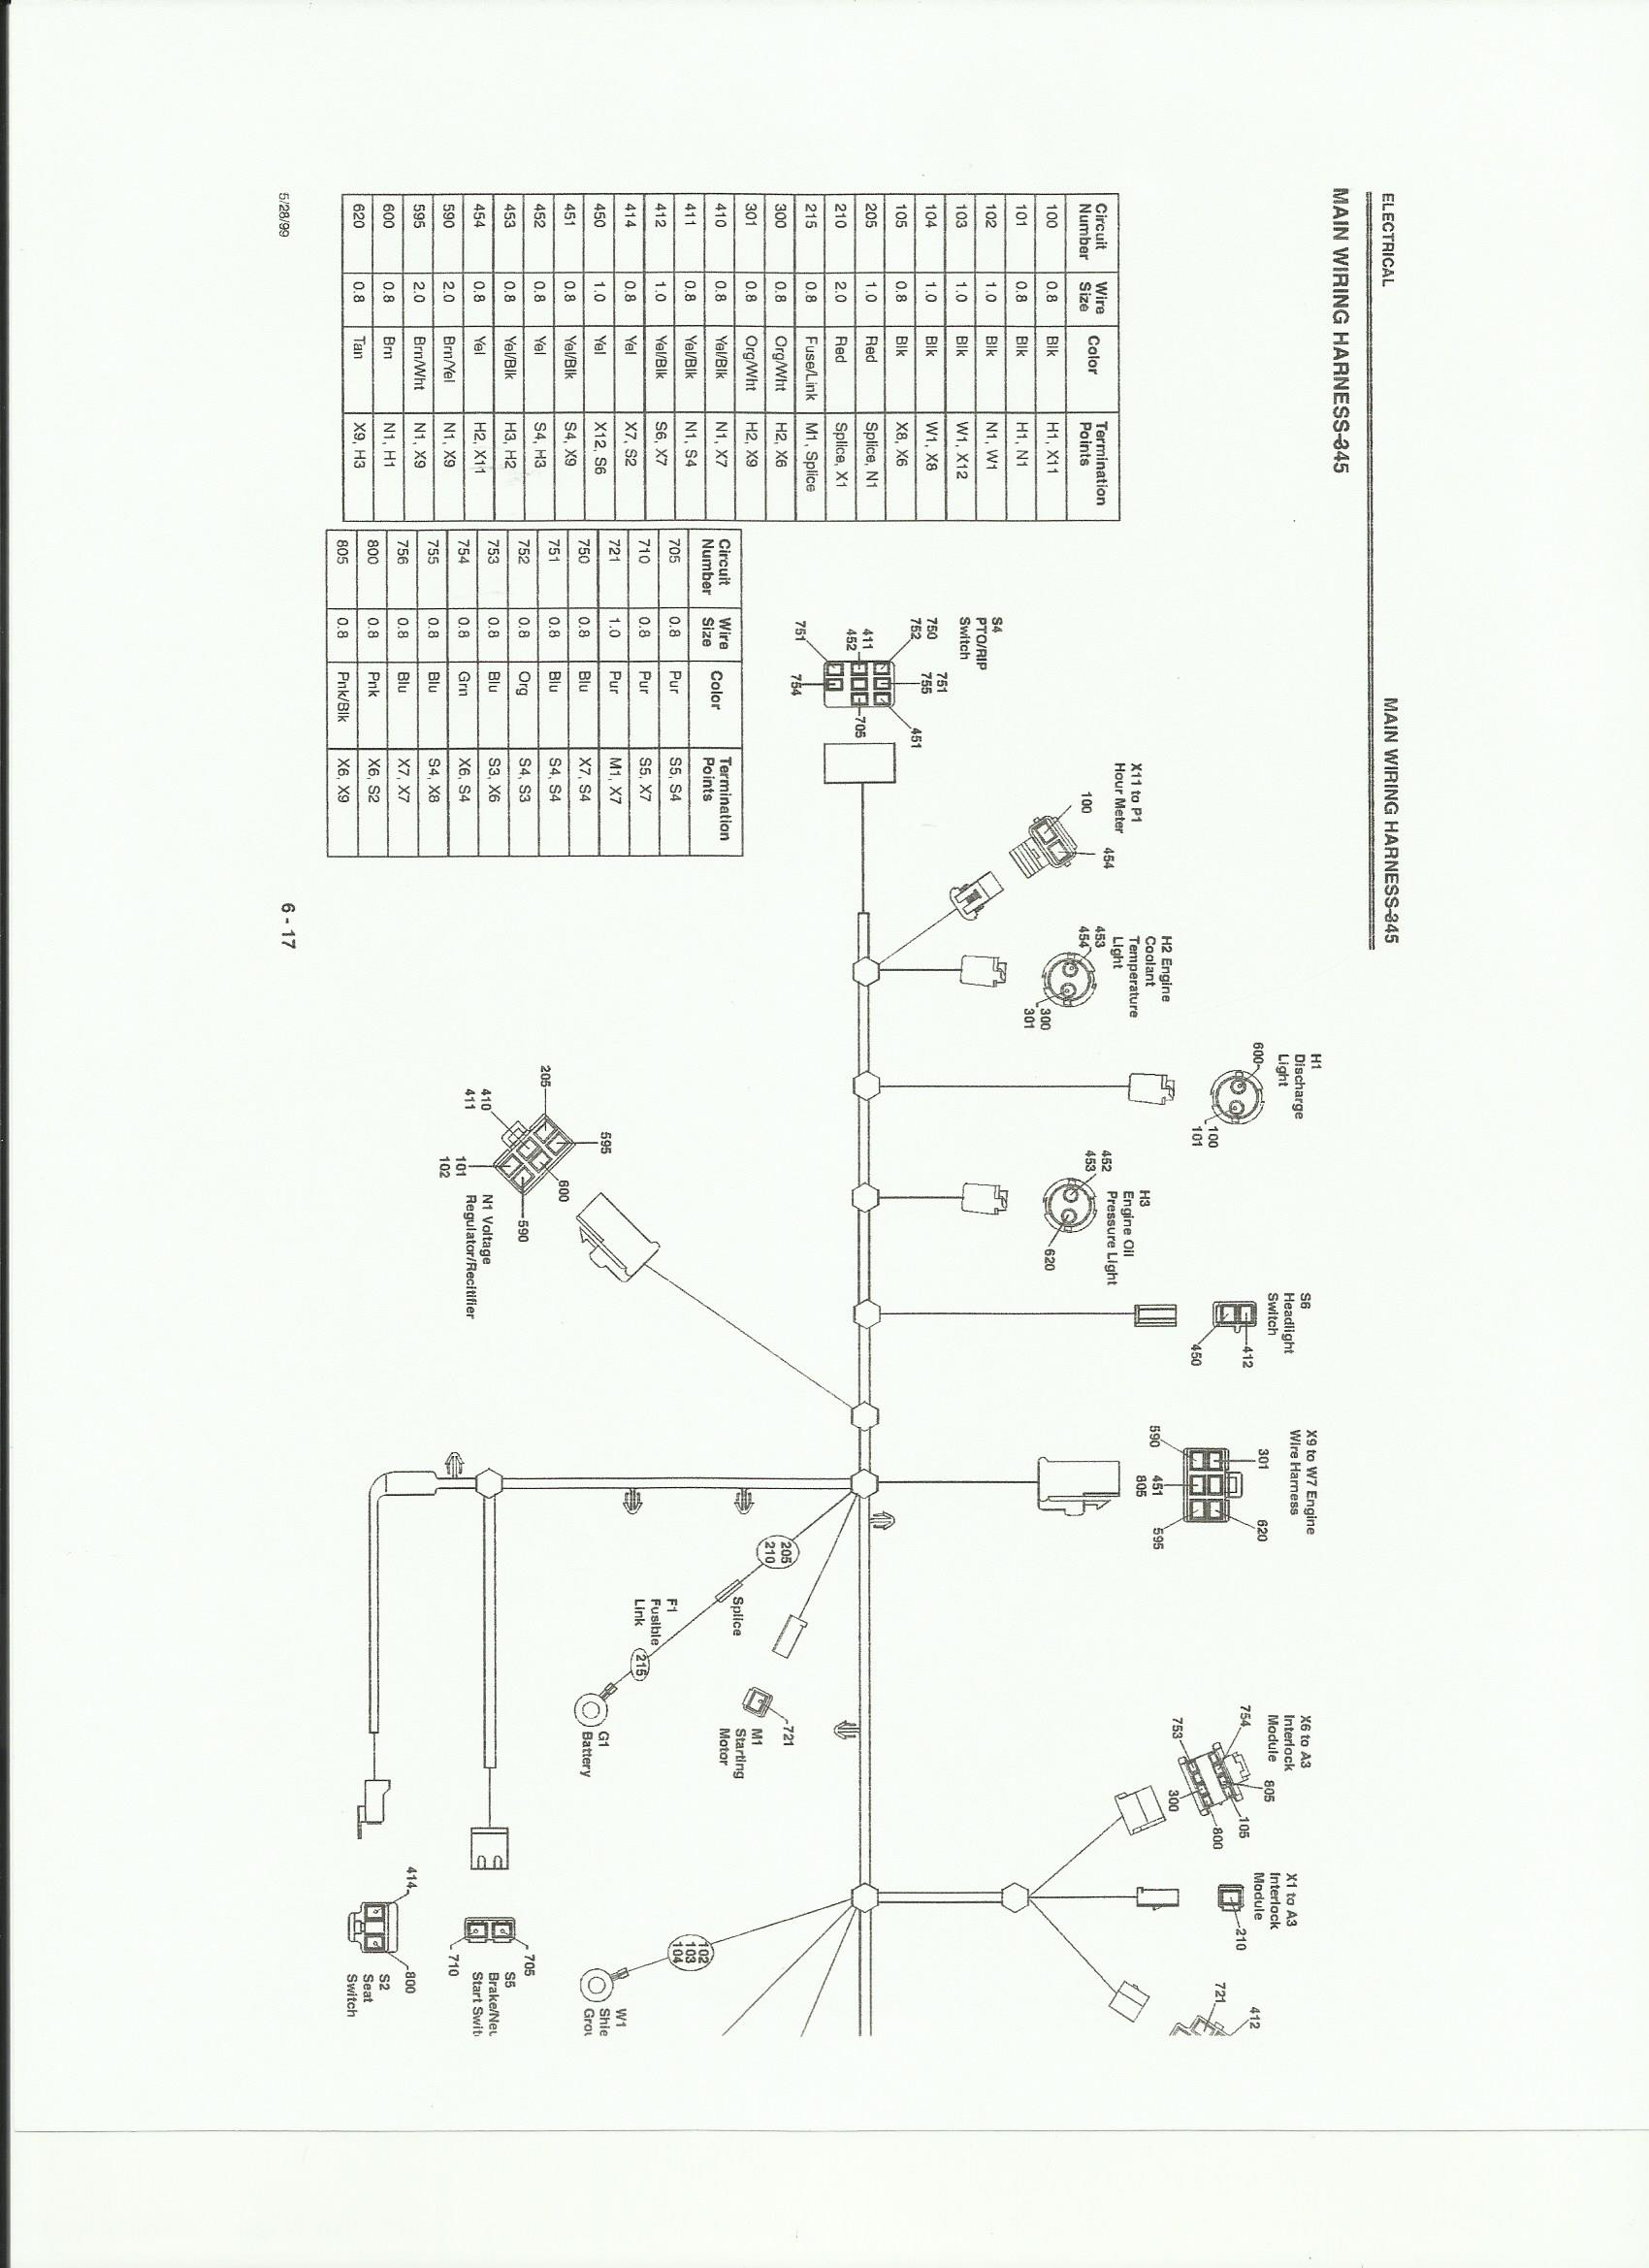 need a 345 wiring diagram  pdf please